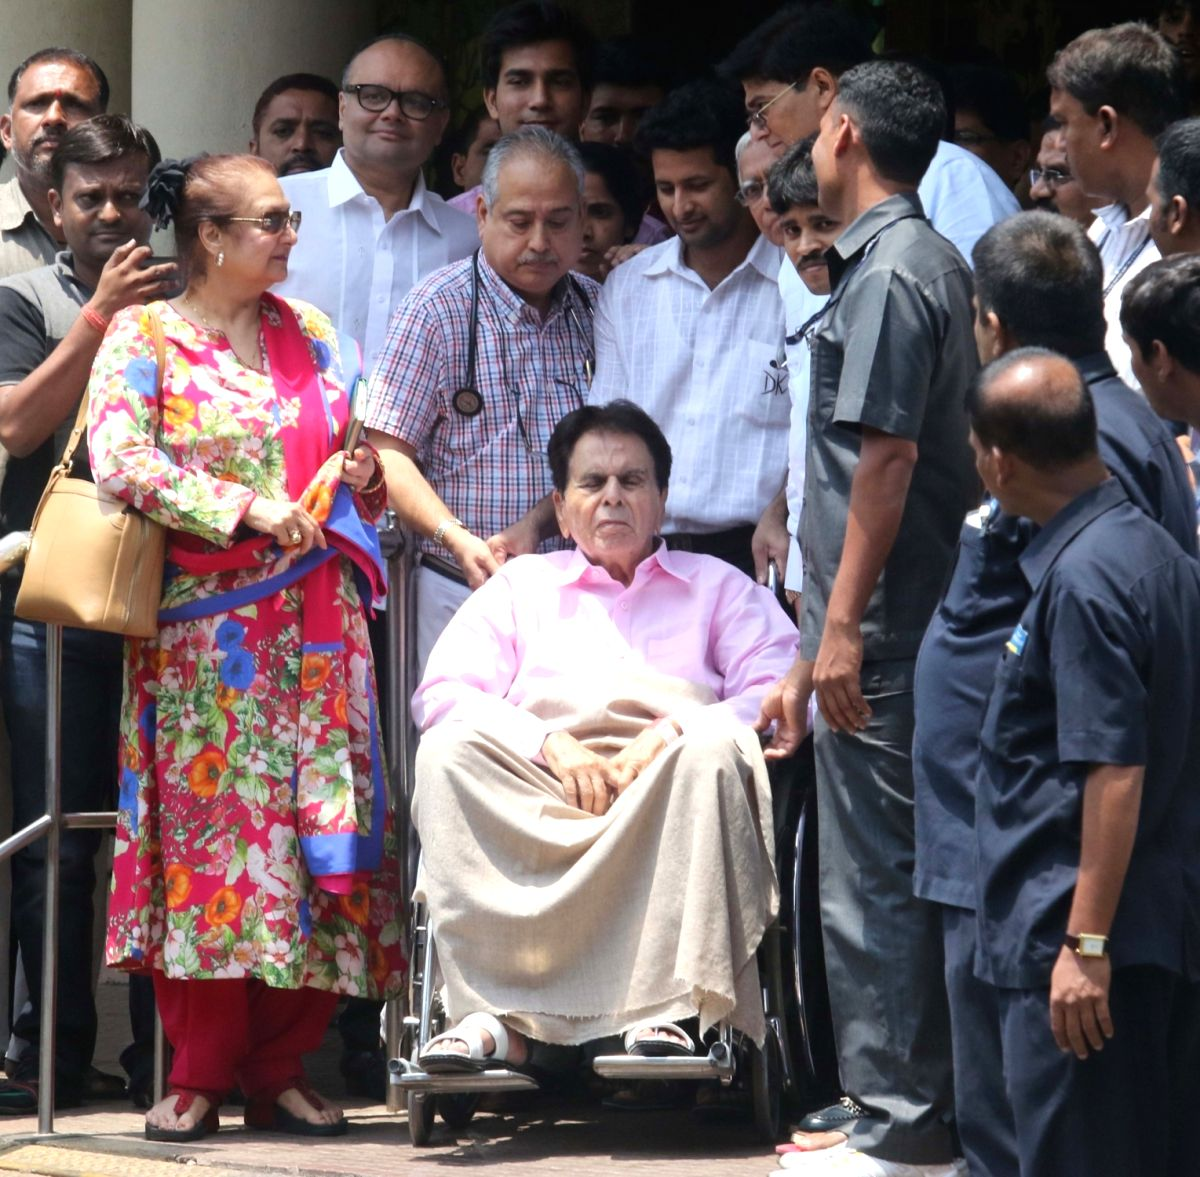 Actor Dilip Kumar after being discharged from Lilavati Hospital Mumbai, on April 21, 2016.